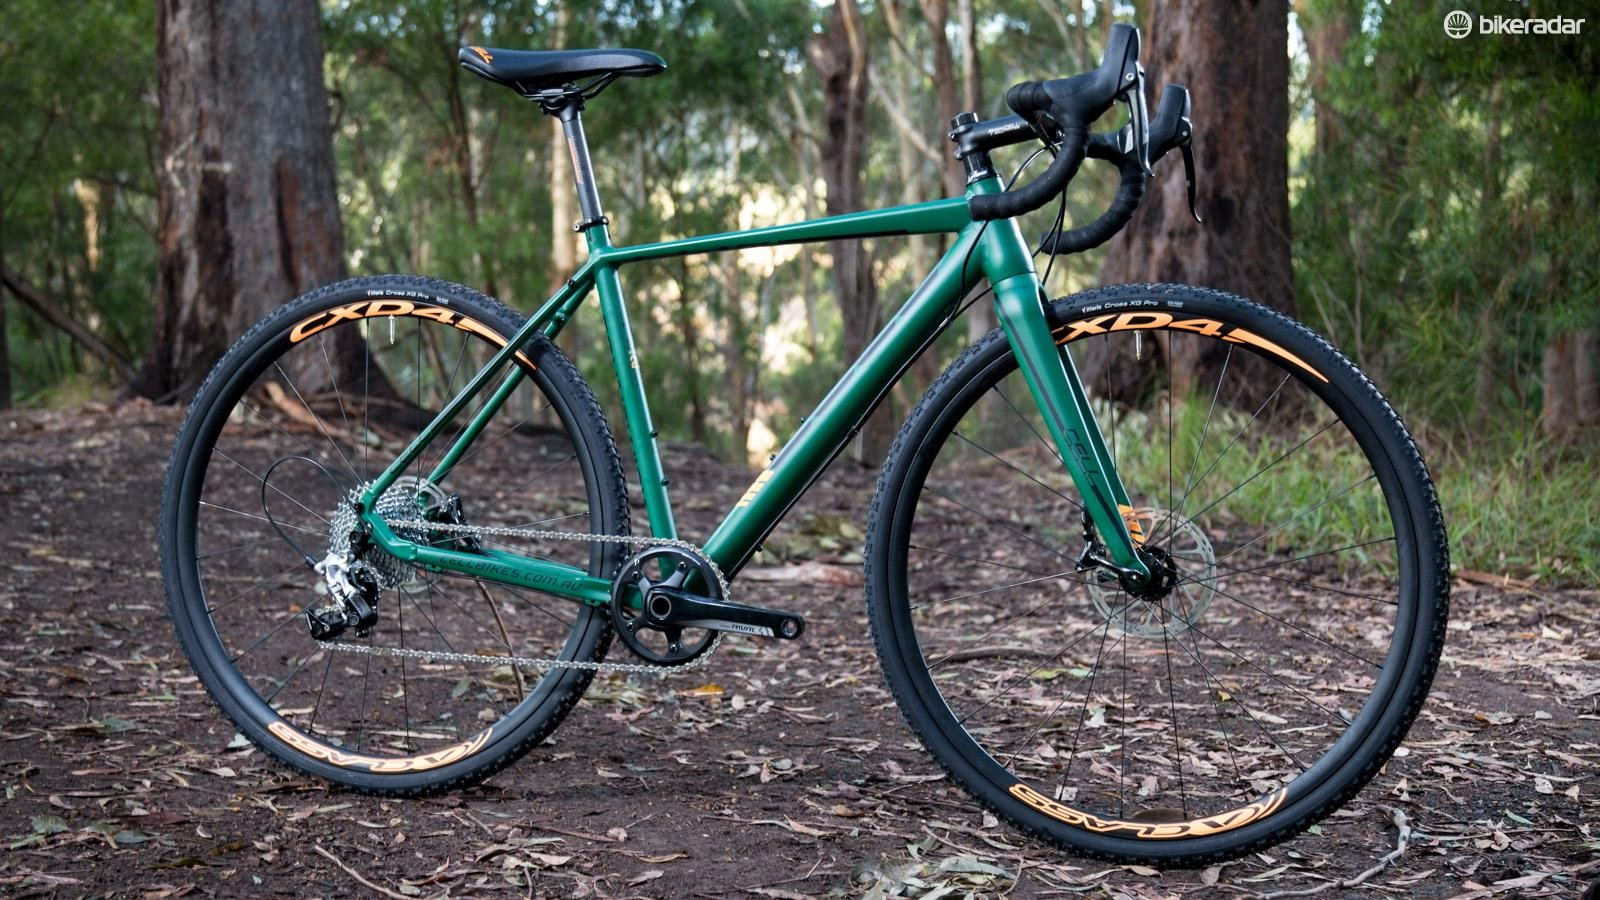 'Cross bikes bear a striking resemblance to road bikes, but they are much more capable